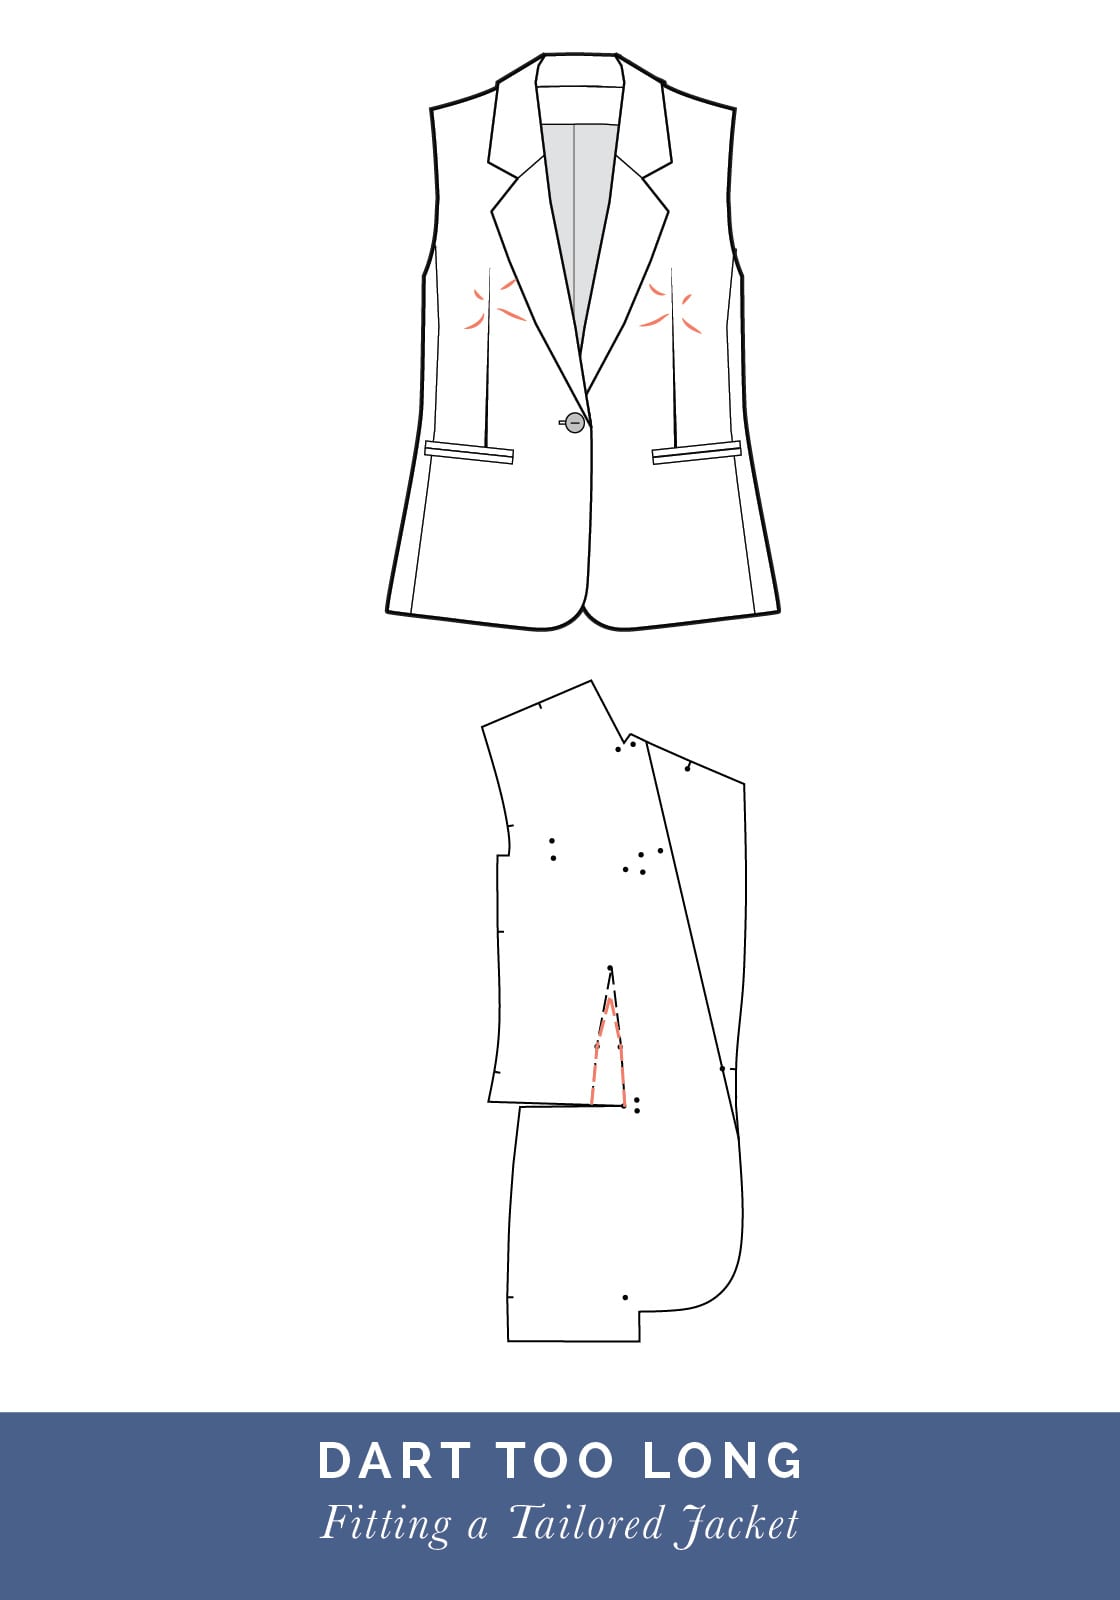 Dart too long // How to fit a Tailored jacket or Blazer // Fit adjustment issues and fixes